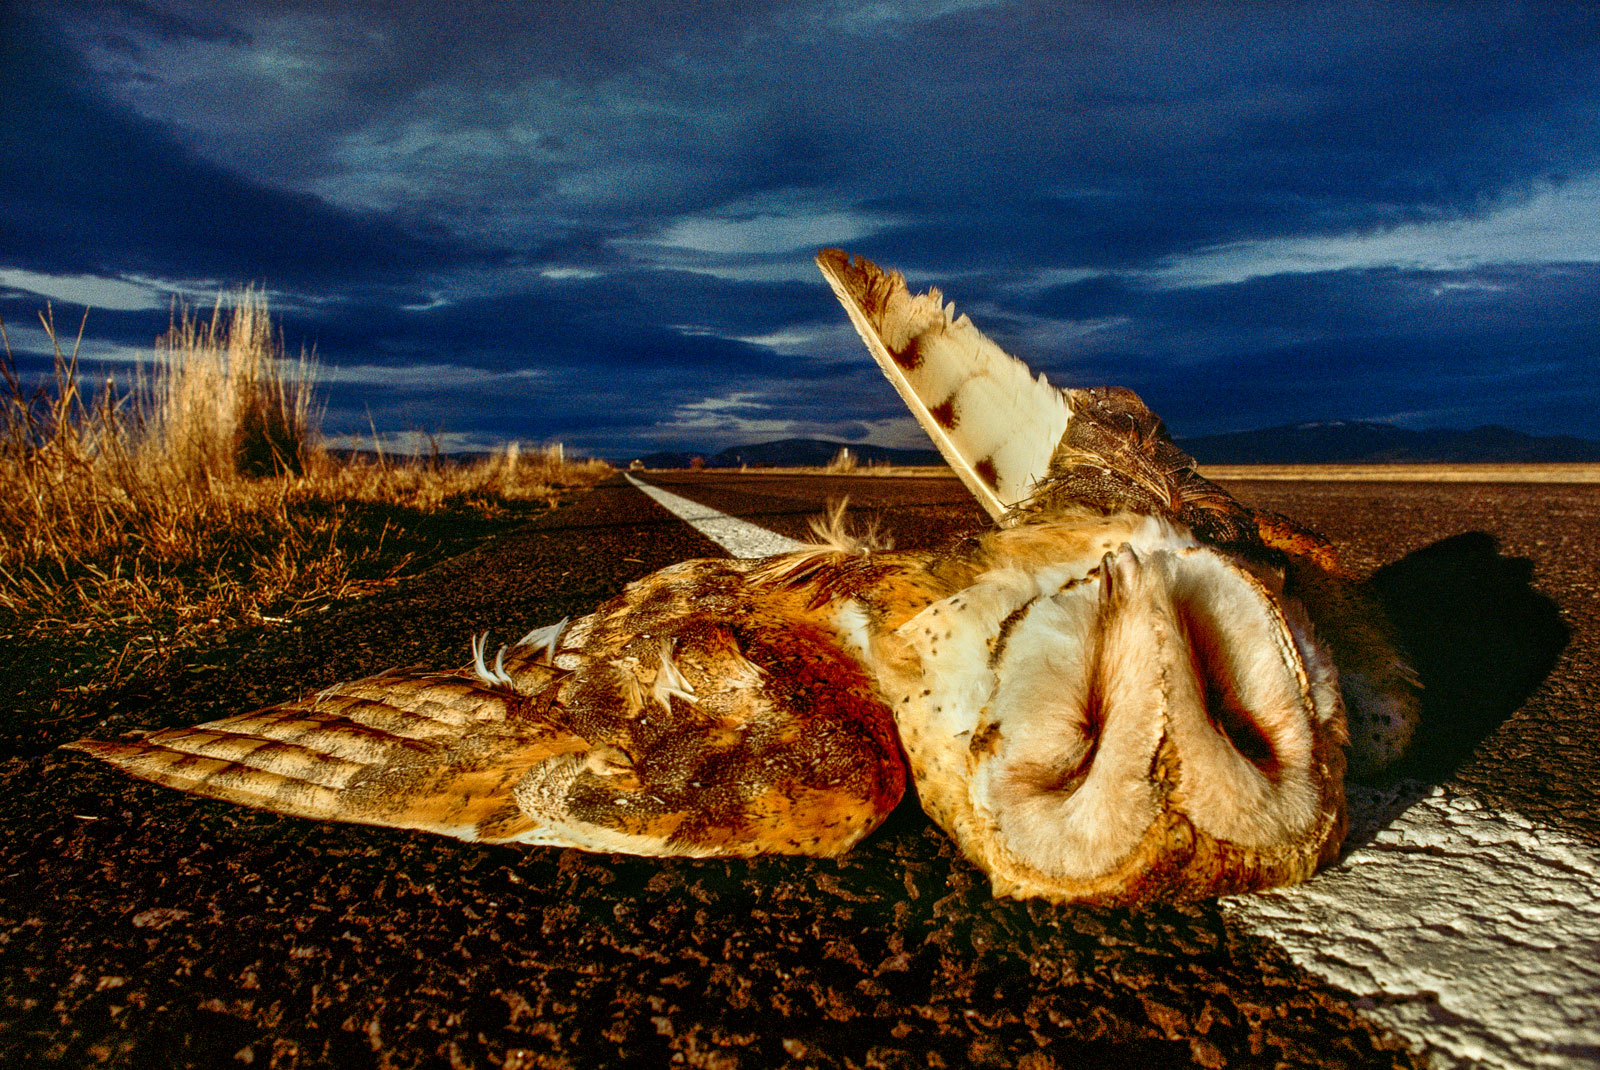 Barn owl dead after car collision, Klamath Basin National Wildlife Refuge, California, USA